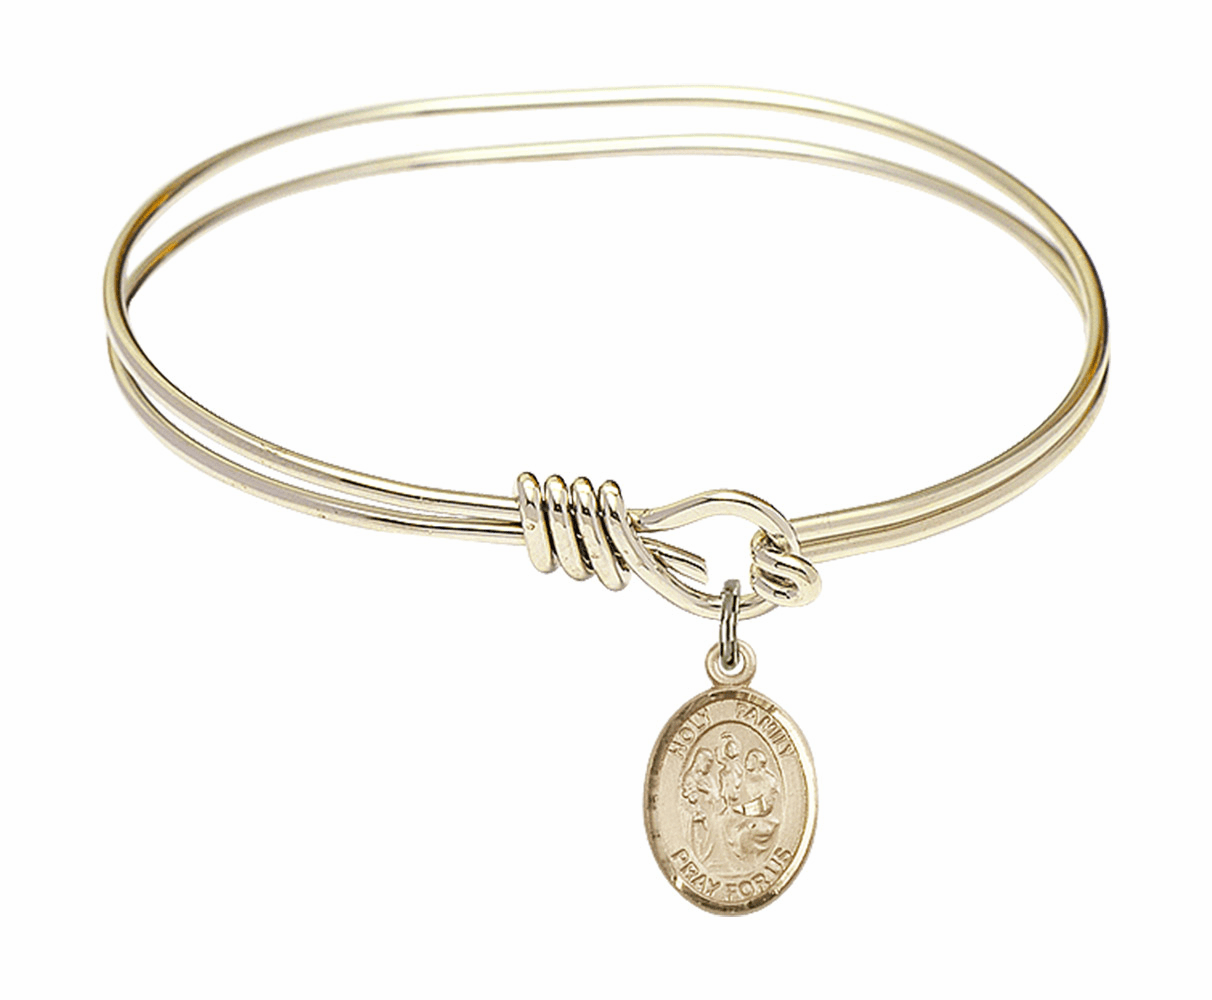 Round Loop Holy Family Bangle 14kt Gold-filled Charm Bracelet by Bliss